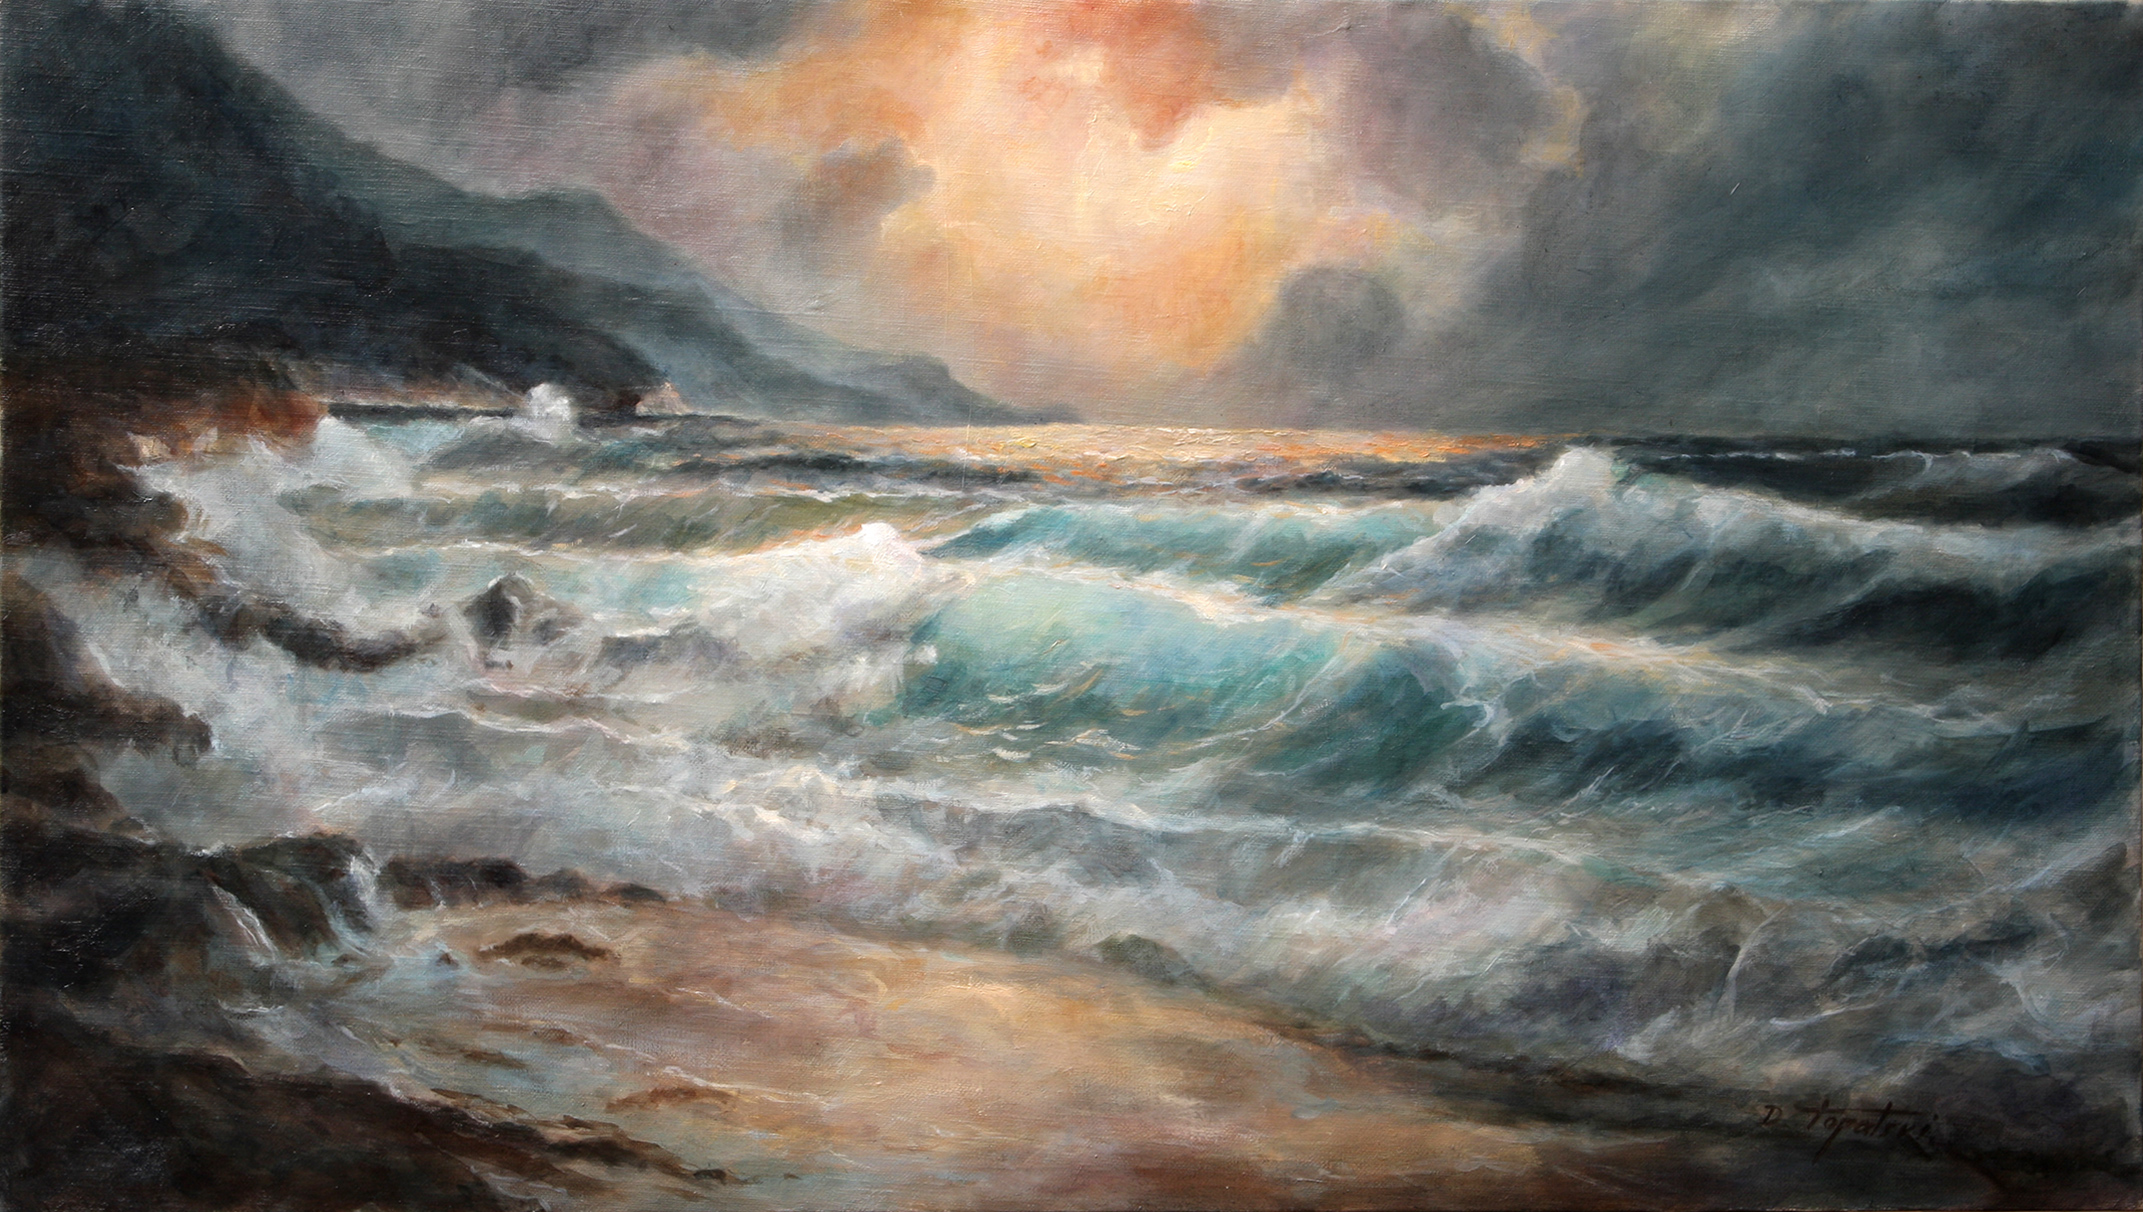 Sea and waves seascape oil painting fine arts gallery for Original fine art paintings for sale